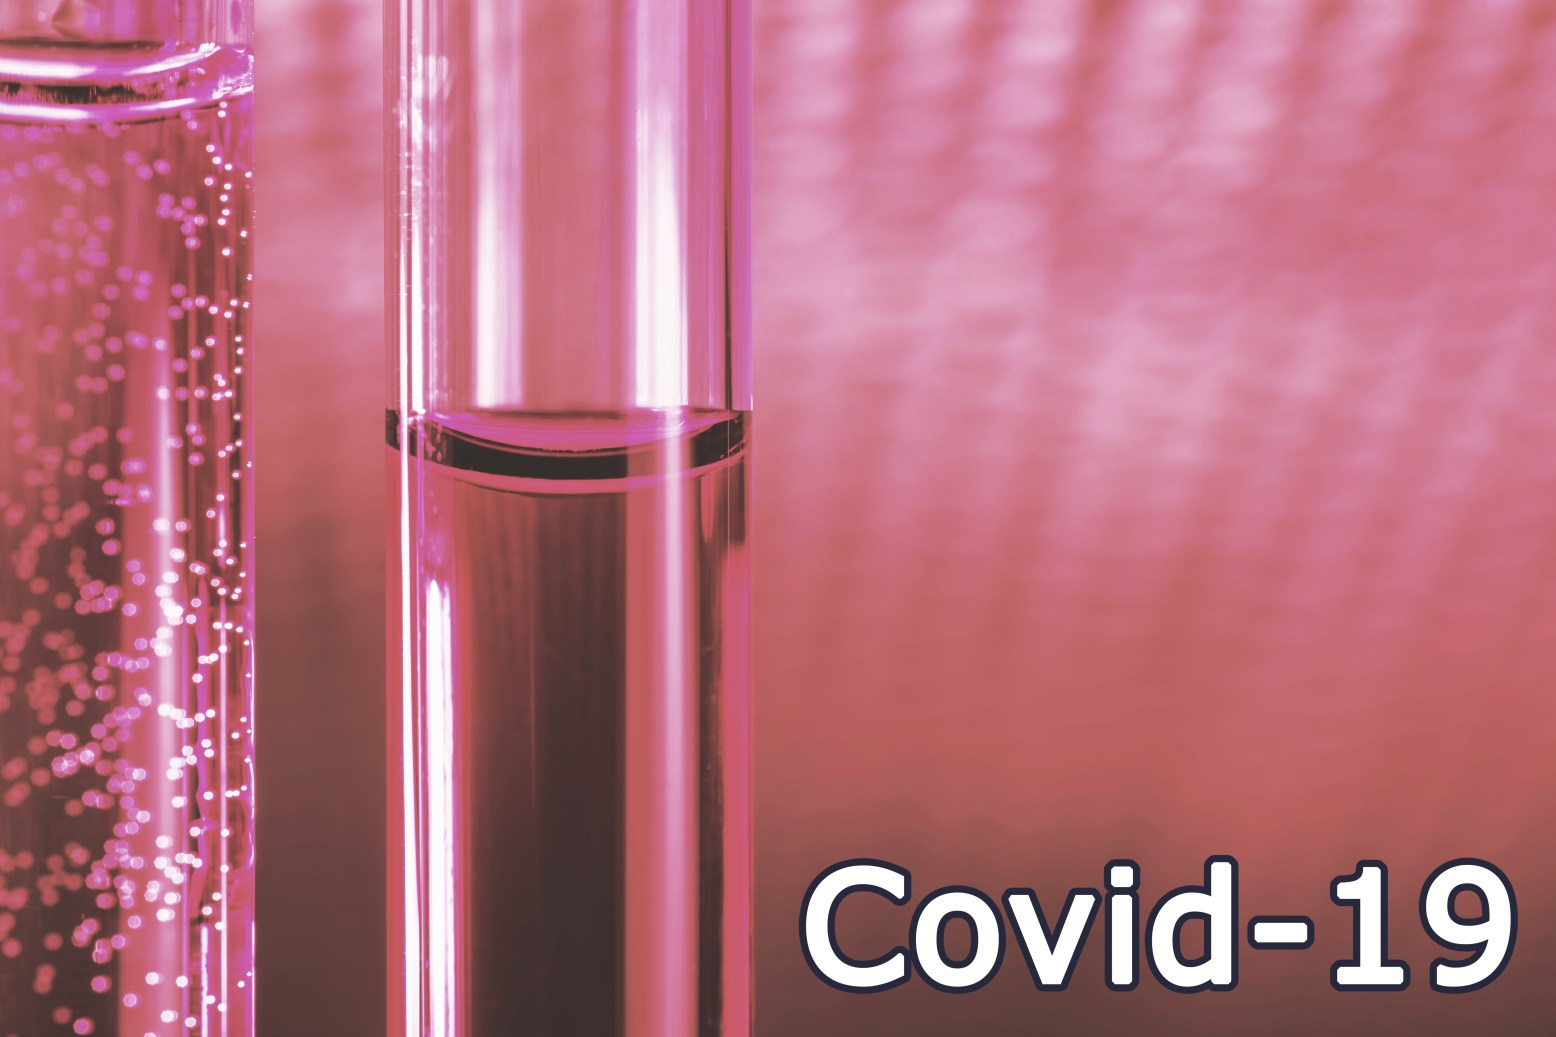 Covid-19. Red liquid vaccine in glass tubes.. Cases of COVID-19 illustration. Image credit: Ivan Uralsky. vaccine hesitancy concept. Also to illustrate article re: emergency use authorisation. Oxford/AstraZeneca vaccine. Also used in coverage of vaccine hoarding. Vaccination campaign concept. Cost of COVID-19 vaccine concept. vaccine shipments concept.